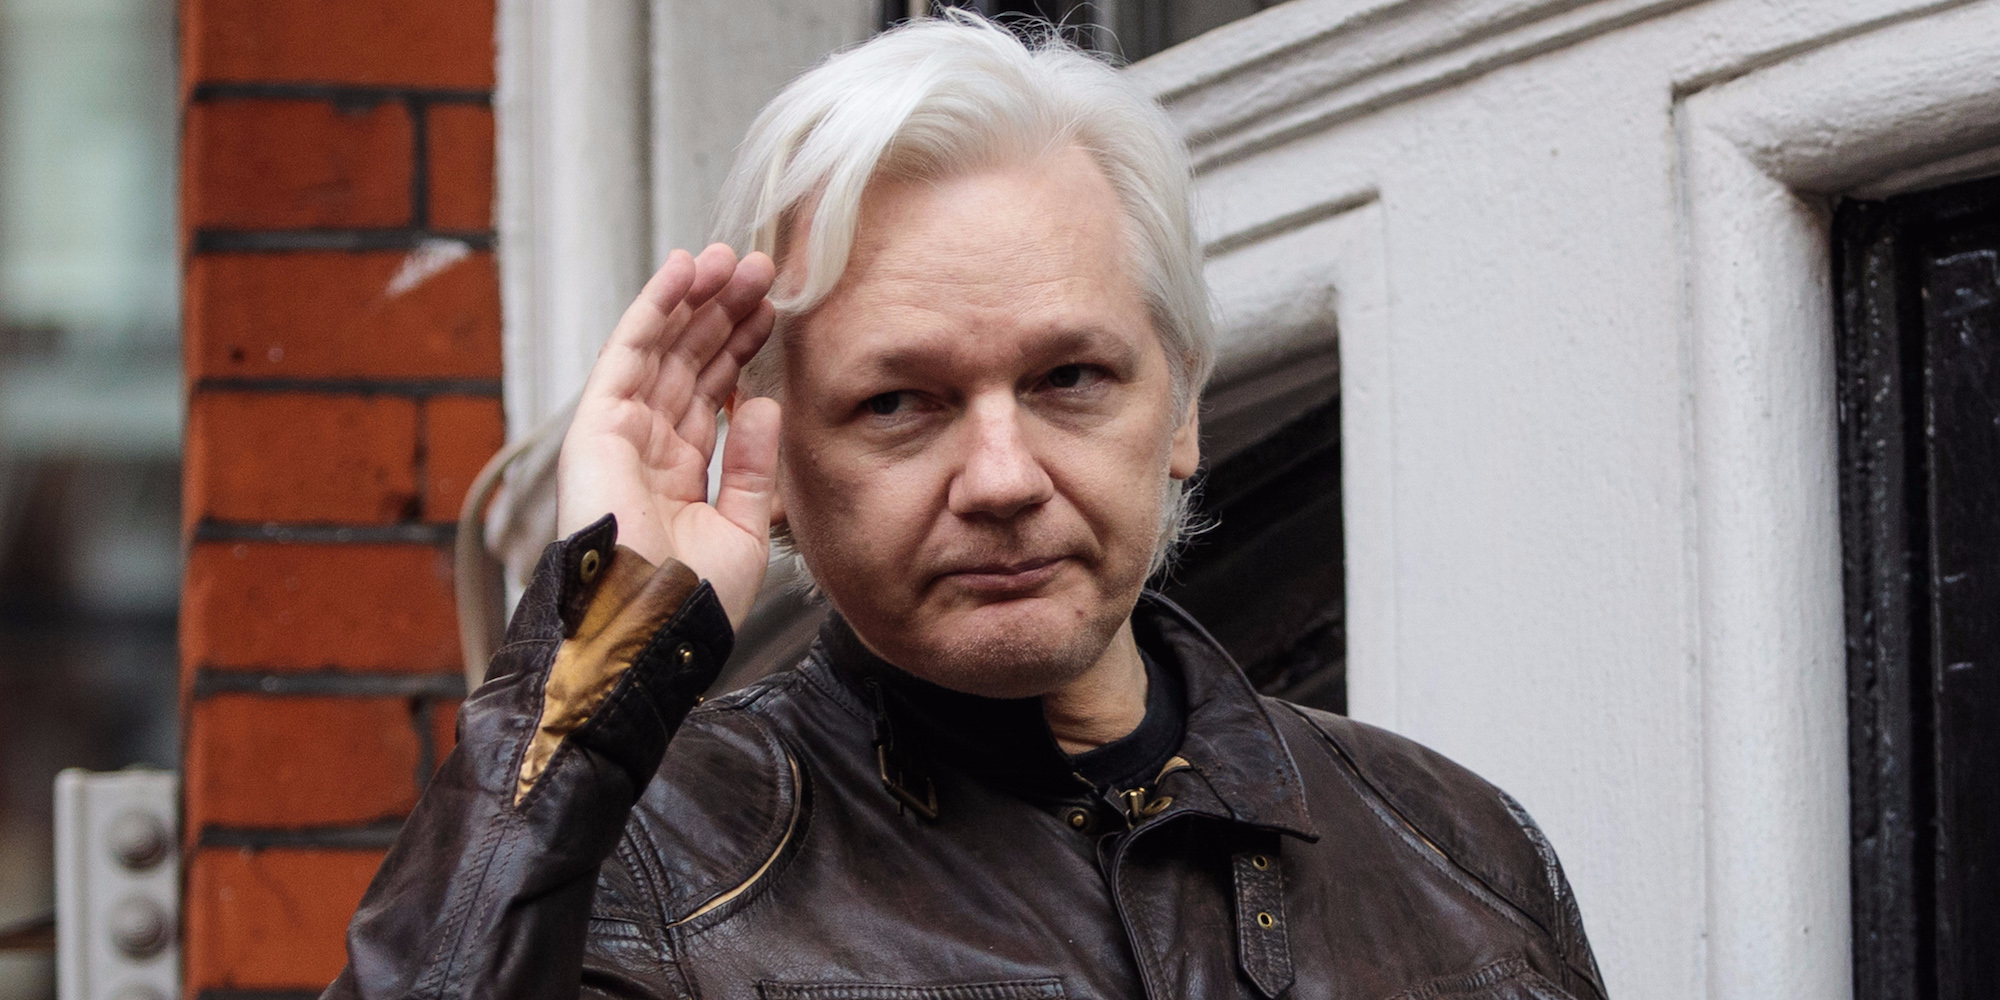 Julian Assange's Twitter account briefly vanished